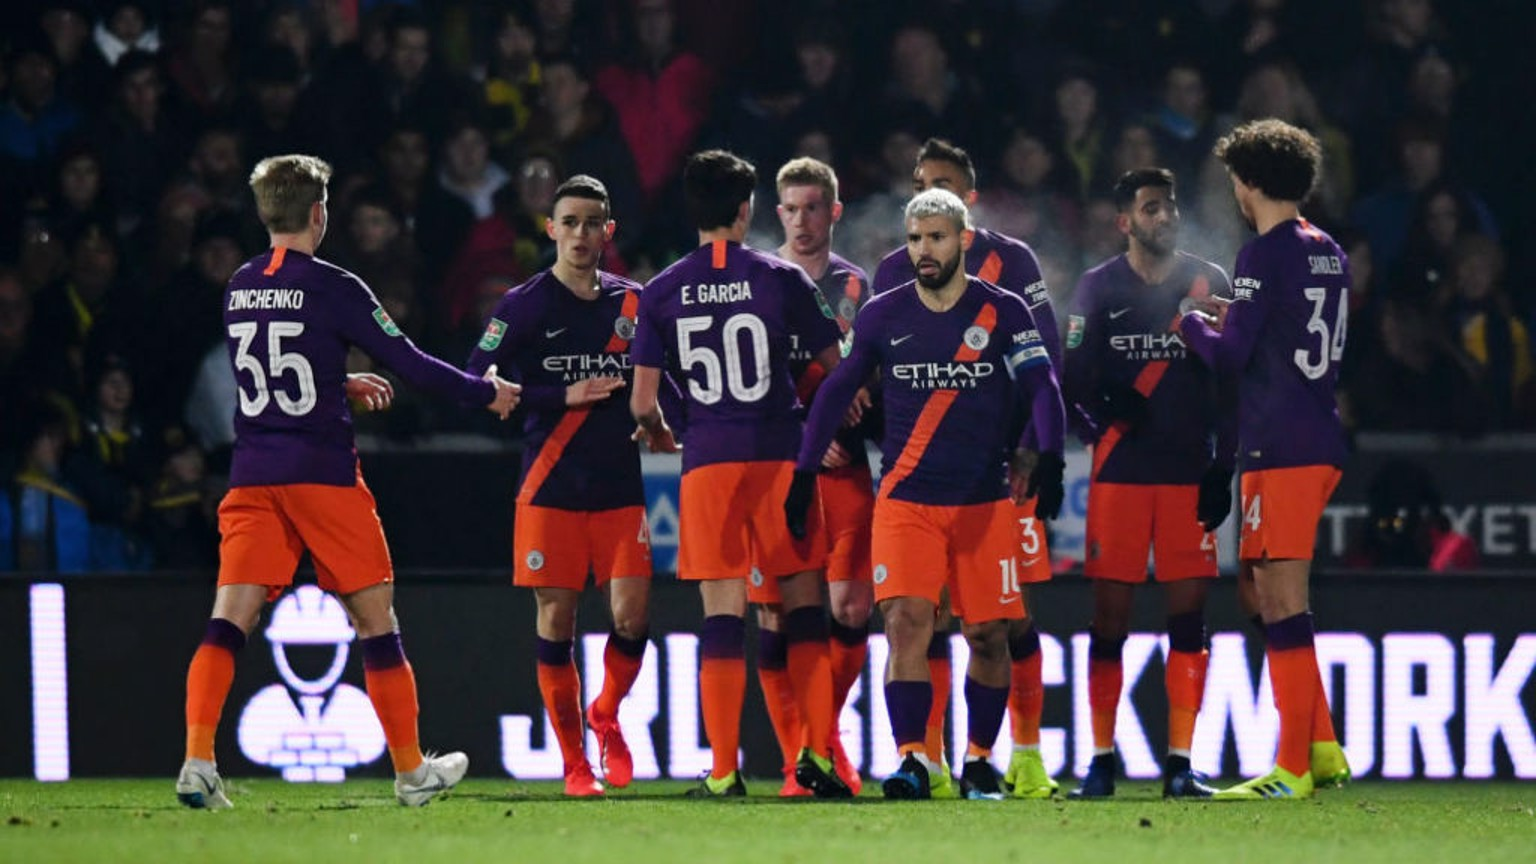 DEADLOCK BROKEN: The team celebrate following Sergio Aguero's opening goal of the game